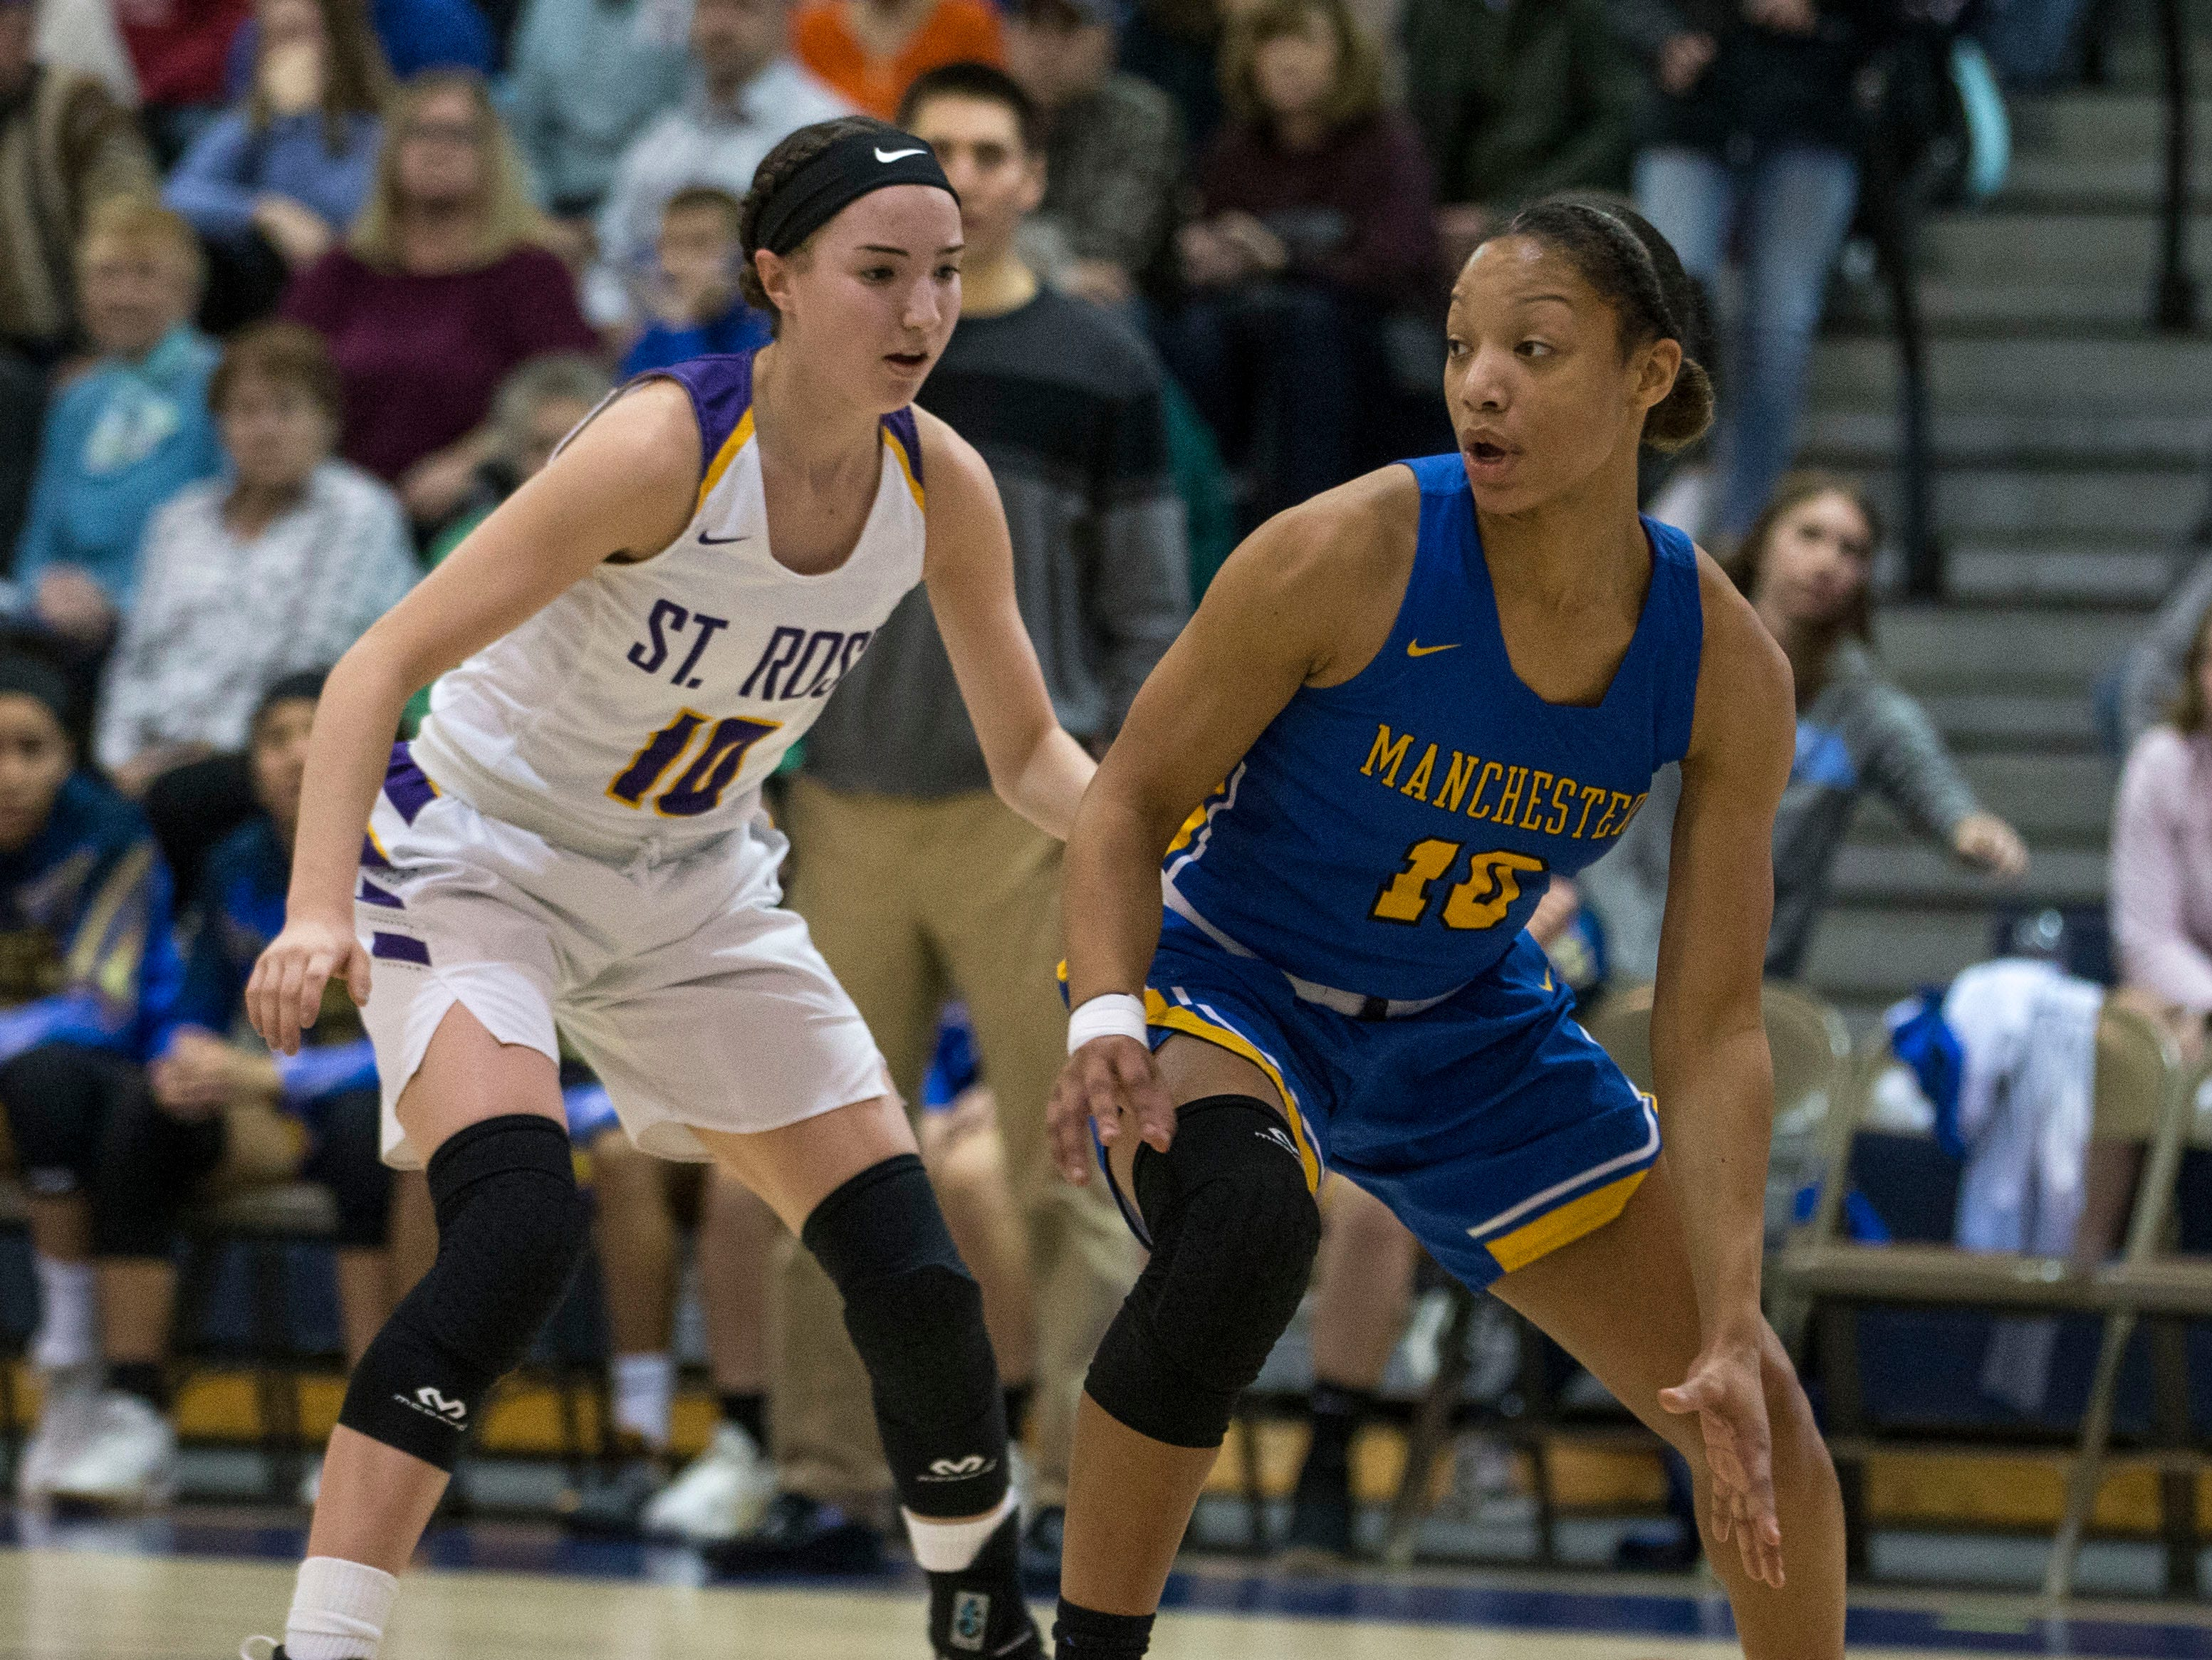 Shore Conference Tournament semifinals featuring St. Rose vs Manchester.Toms River, NJTuesday, February 19, 2019